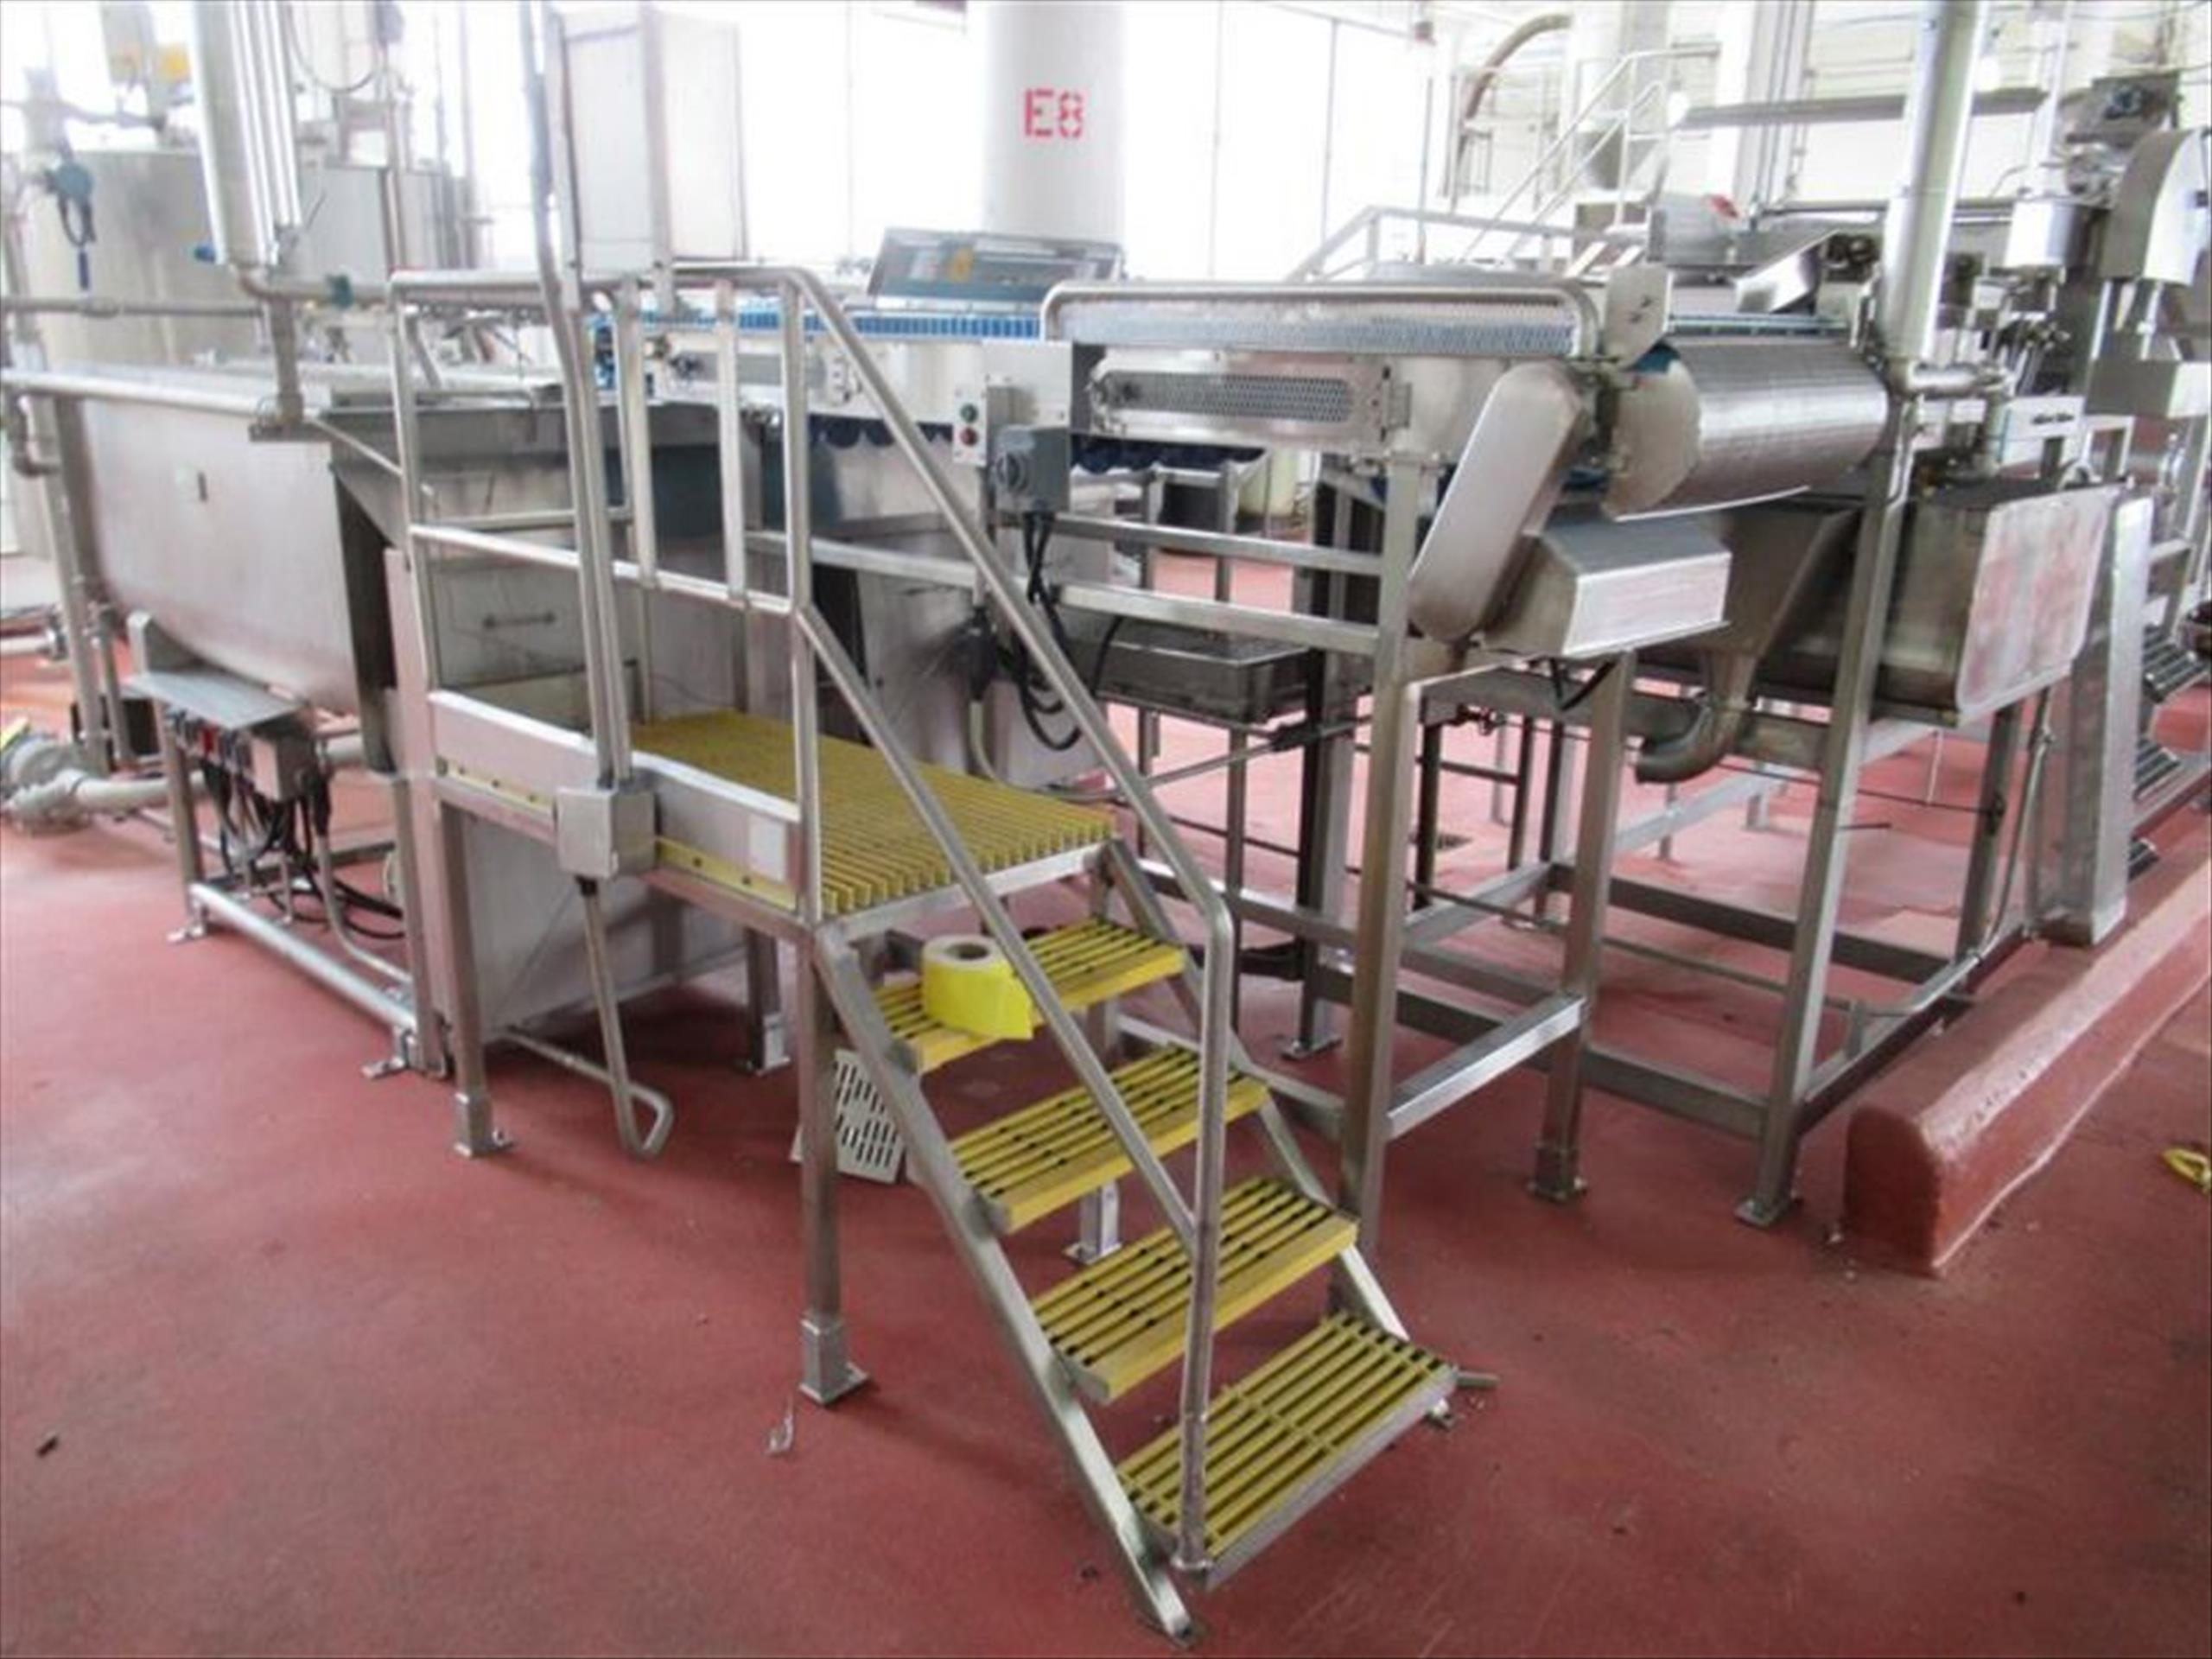 Rubber belt conveyor with magnet approx 30 in w x 120 in l inspection belt conveyor with PVC - Image 3 of 3